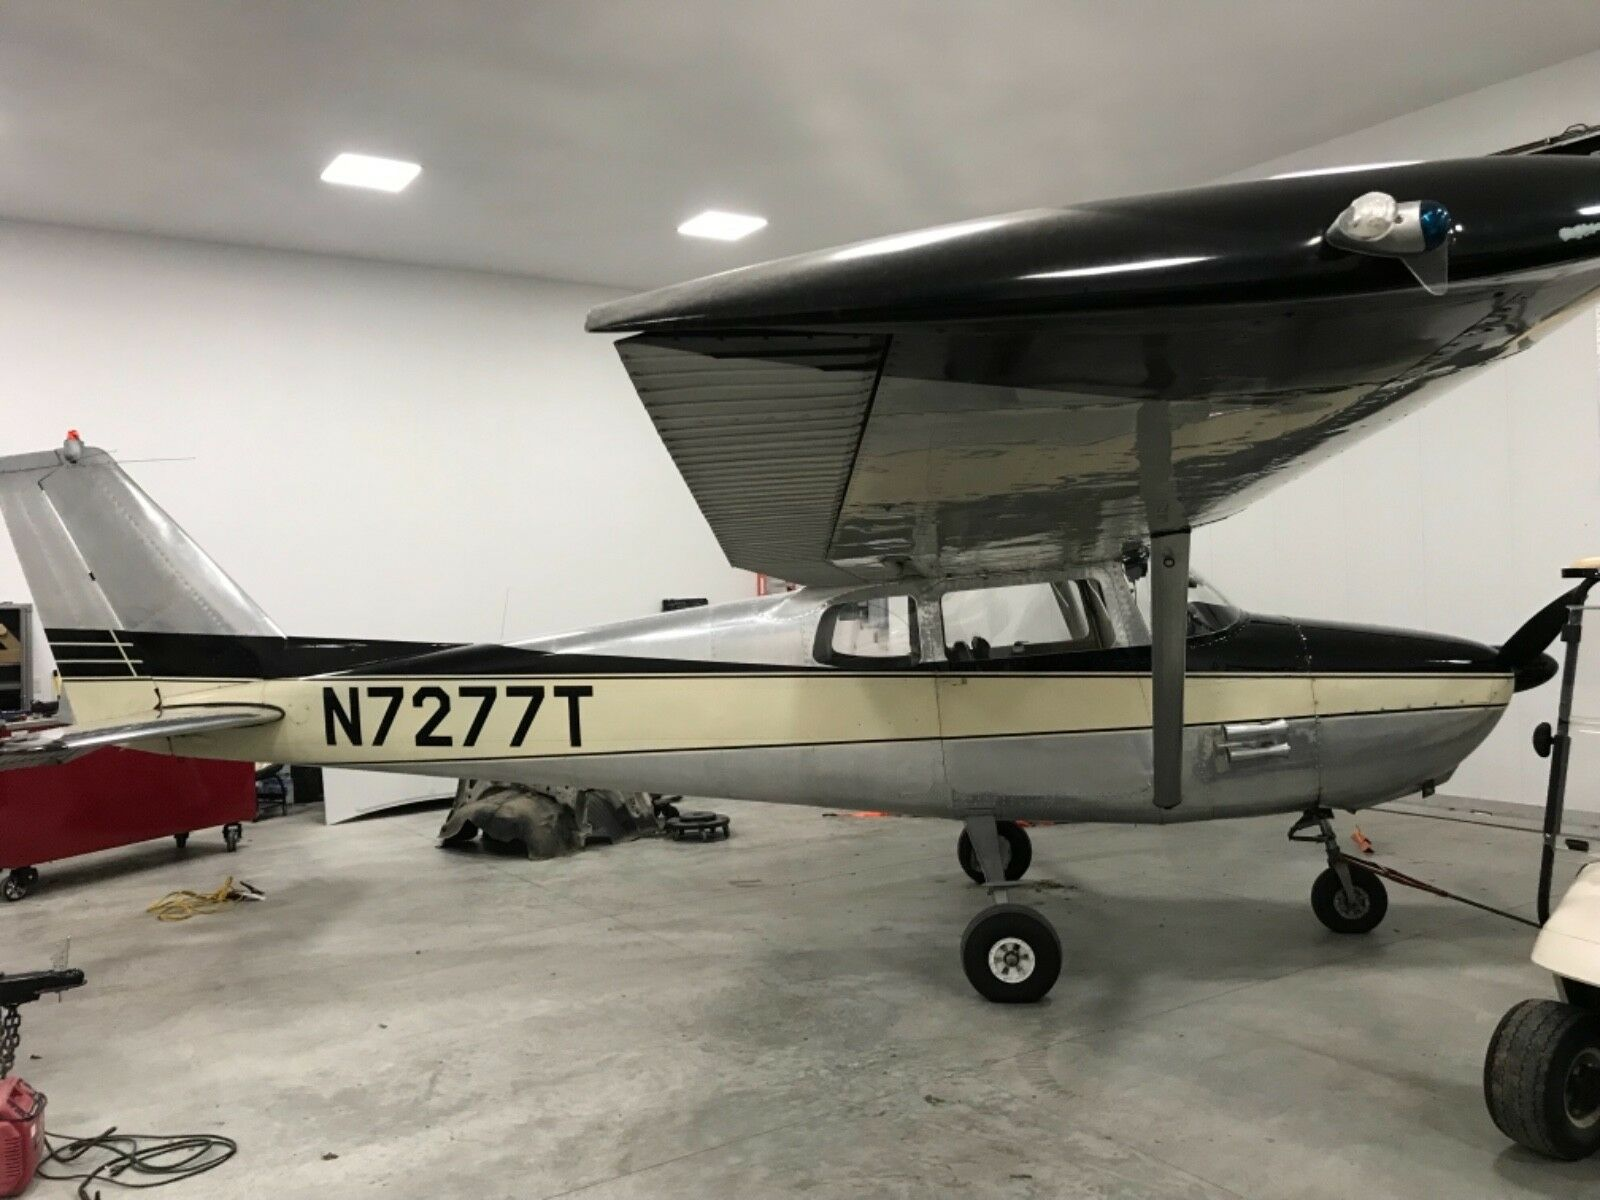 hangared 1960 Cessna 172 aircraft for sale